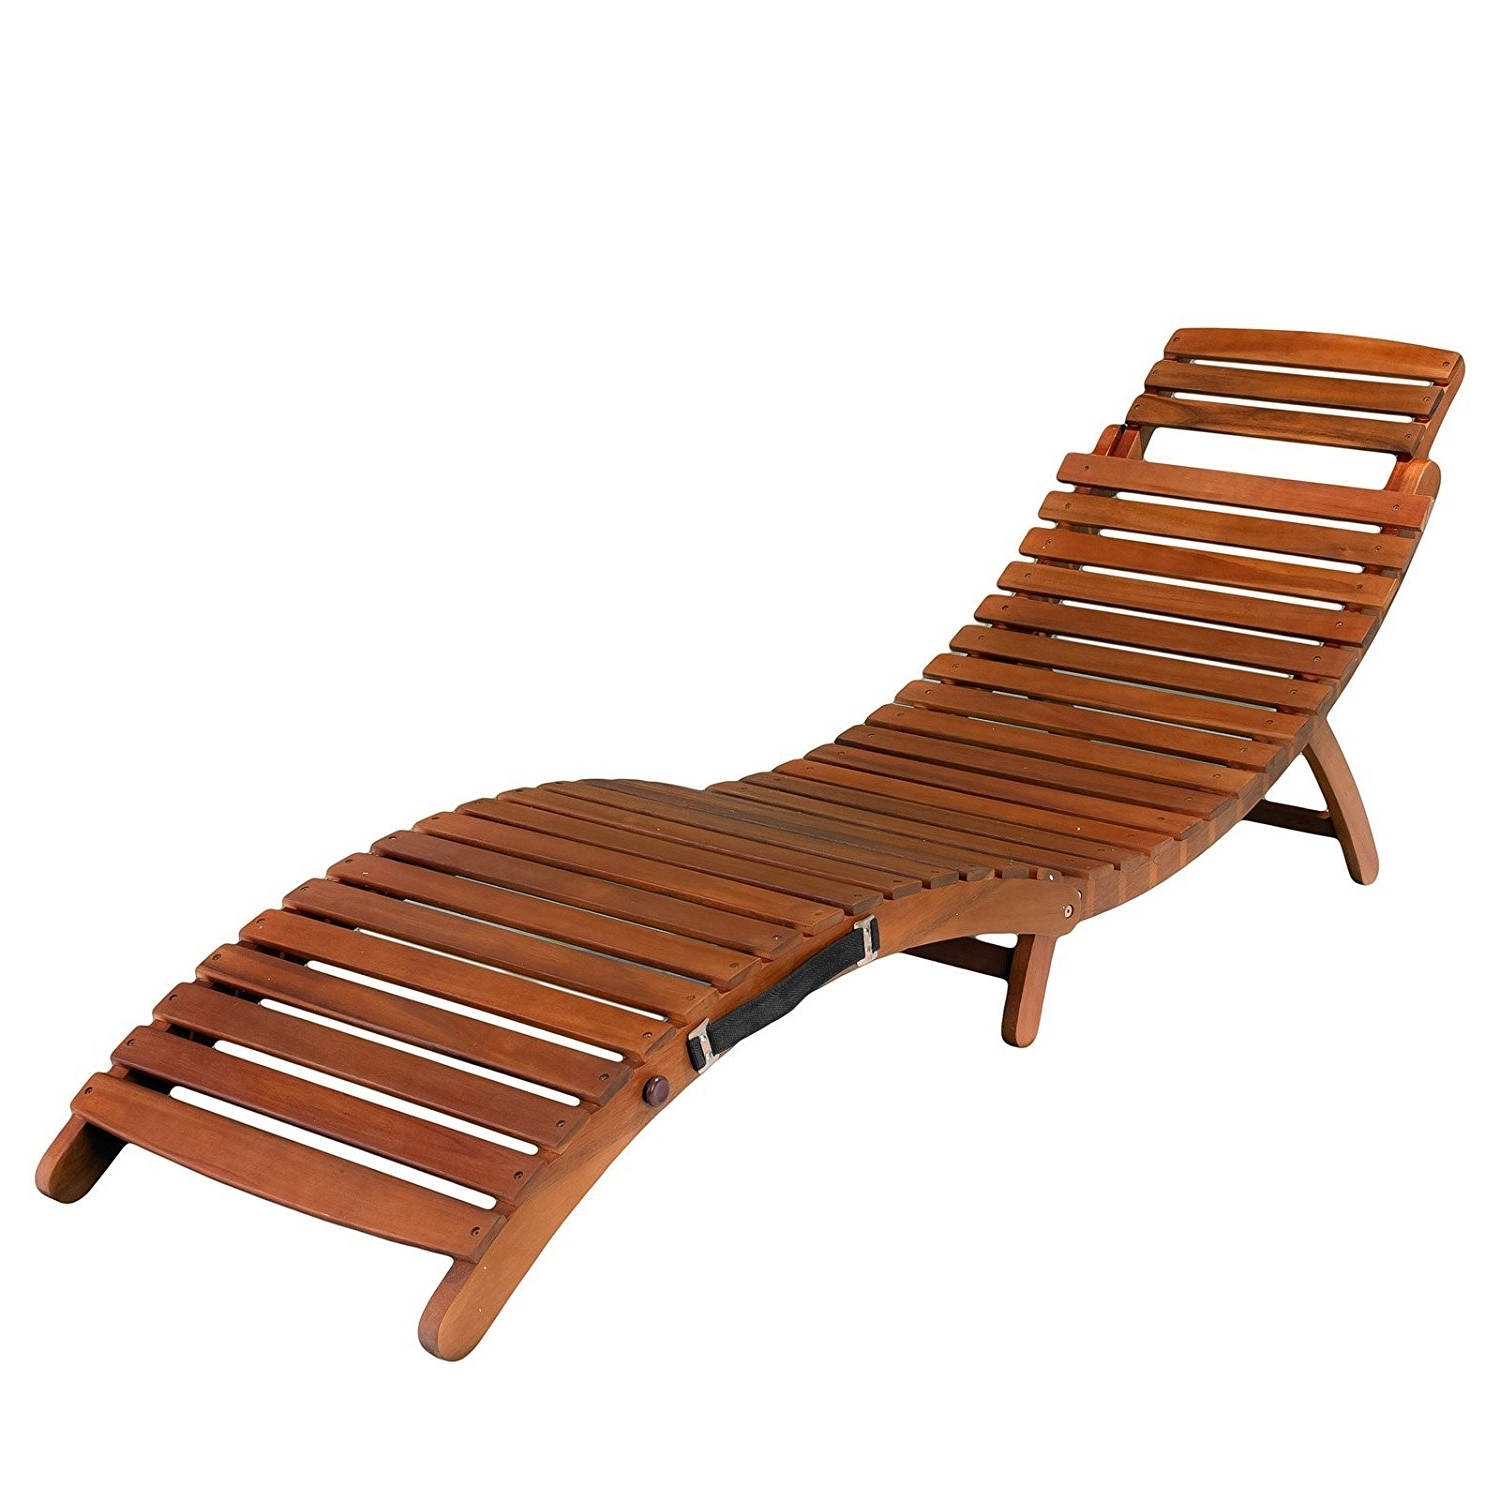 Trendy Amazon: Lahaina Outdoor Chaise Lounge: Garden & Outdoor Inside Foldable Chaise Lounge Outdoor Chairs (View 12 of 15)